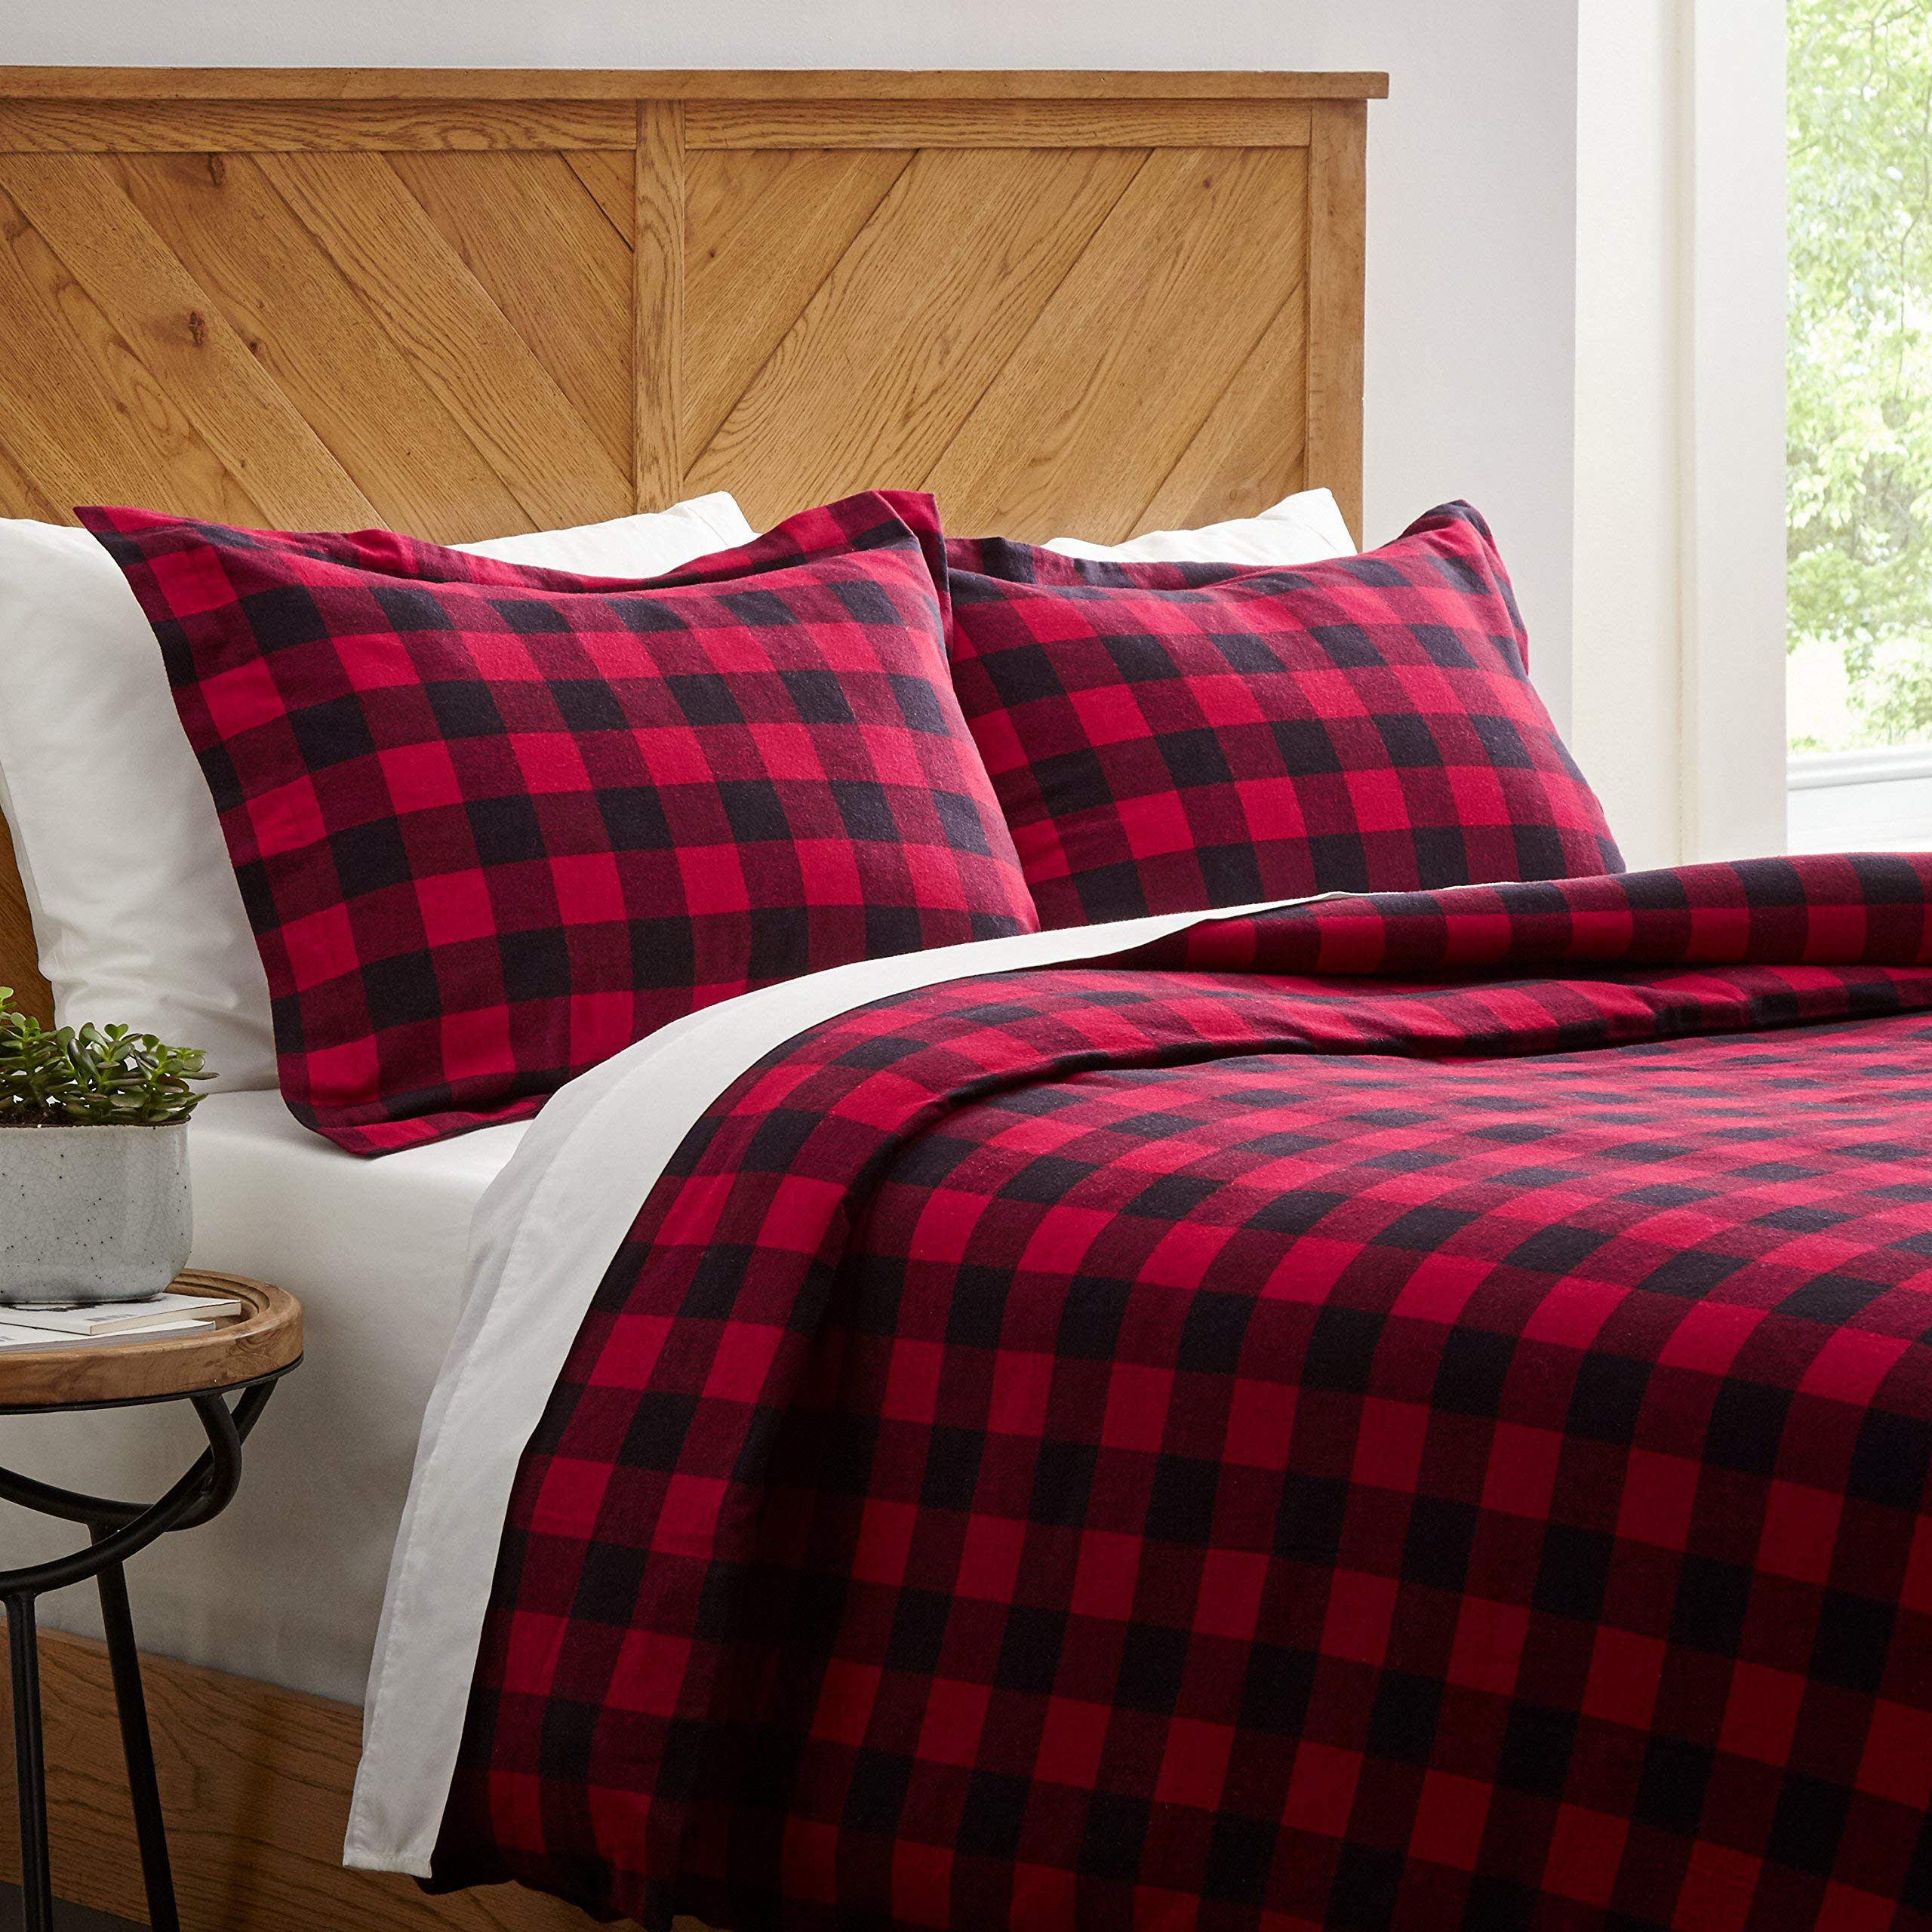 Stone & Beam Rustic Buffalo Check Soft and Breathable Flannel Yarn-Dyed Duvet Set, Full/Queen, Red and Black